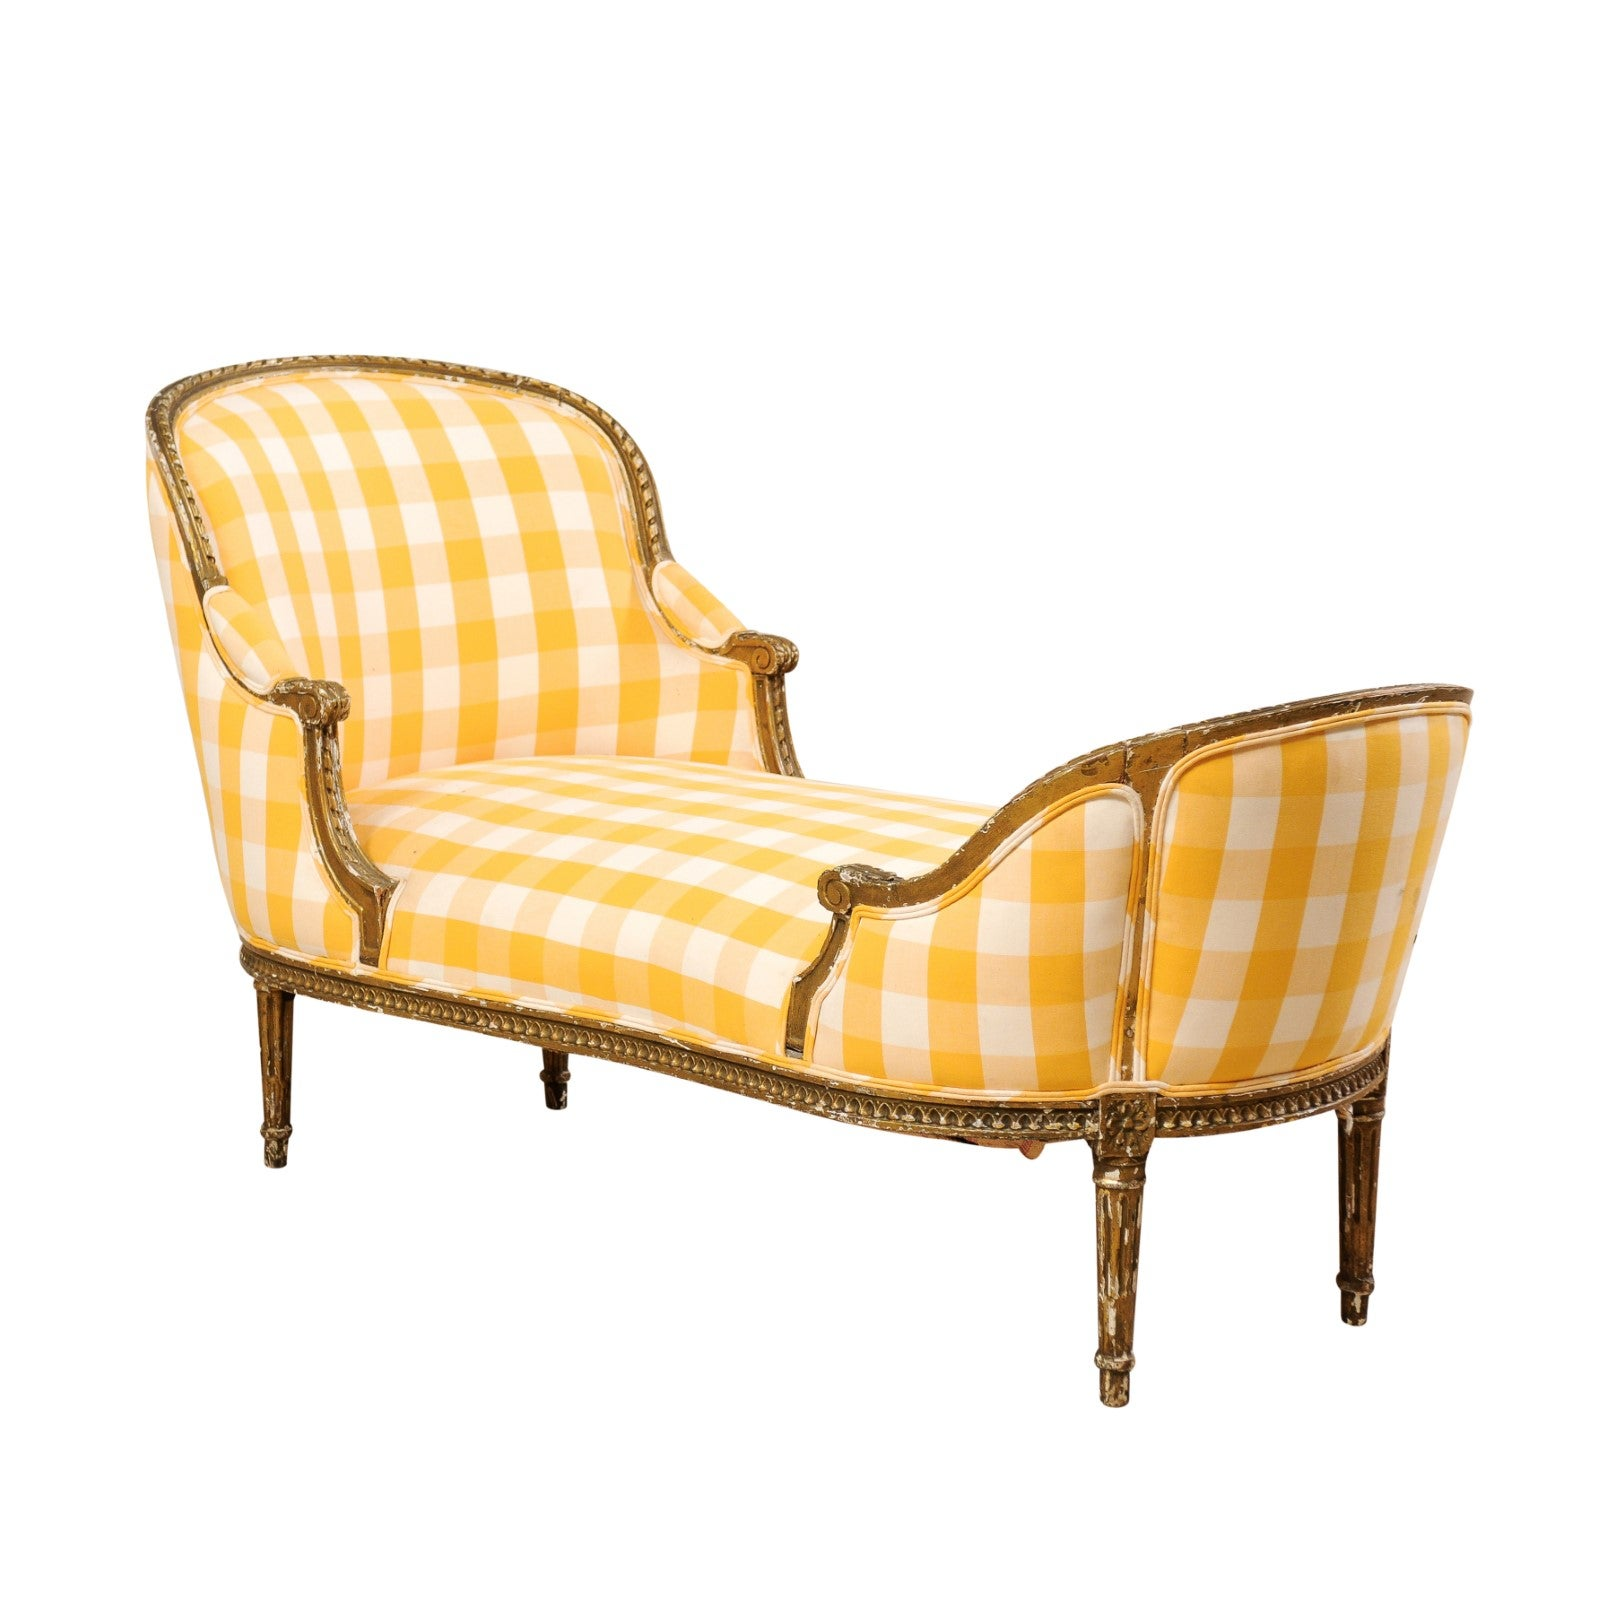 Chaise Style Louis 16 French Turn Of The Century Louis Xvi Style Chaise Longue Of Carved Wood